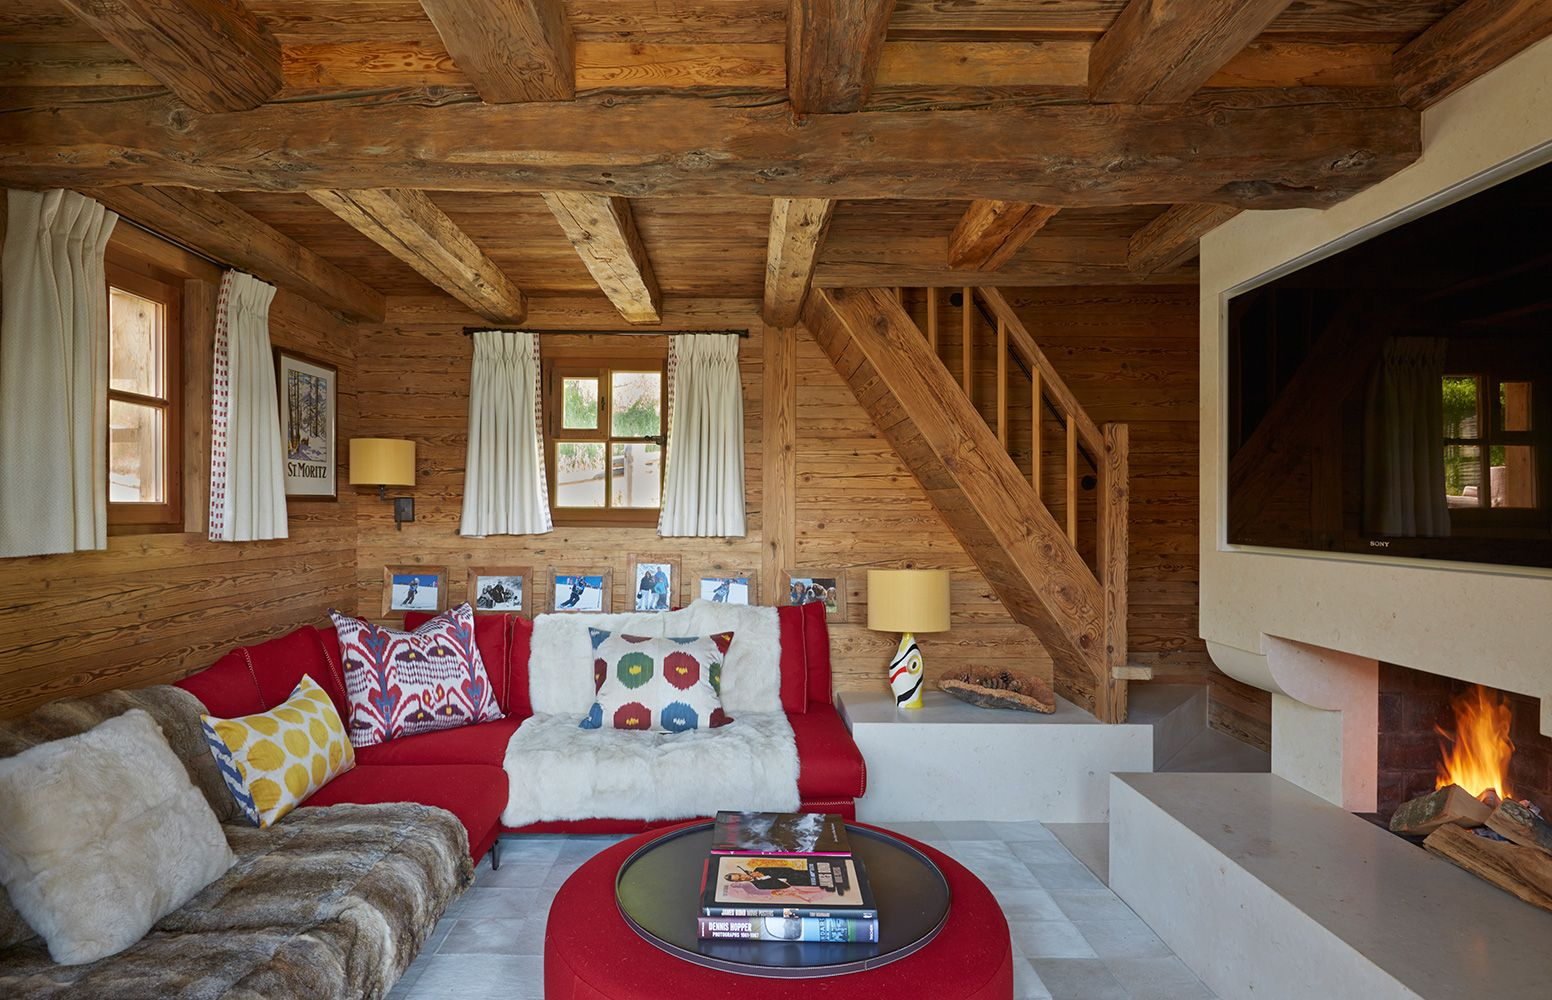 INTERIOR DESIGN ∙ CHALETS ∙ Swiss Chalet - Todhunter EarleTodhunter Earle & INTERIOR DESIGN ∙ CHALETS ∙ Swiss Chalet - Todhunter ...